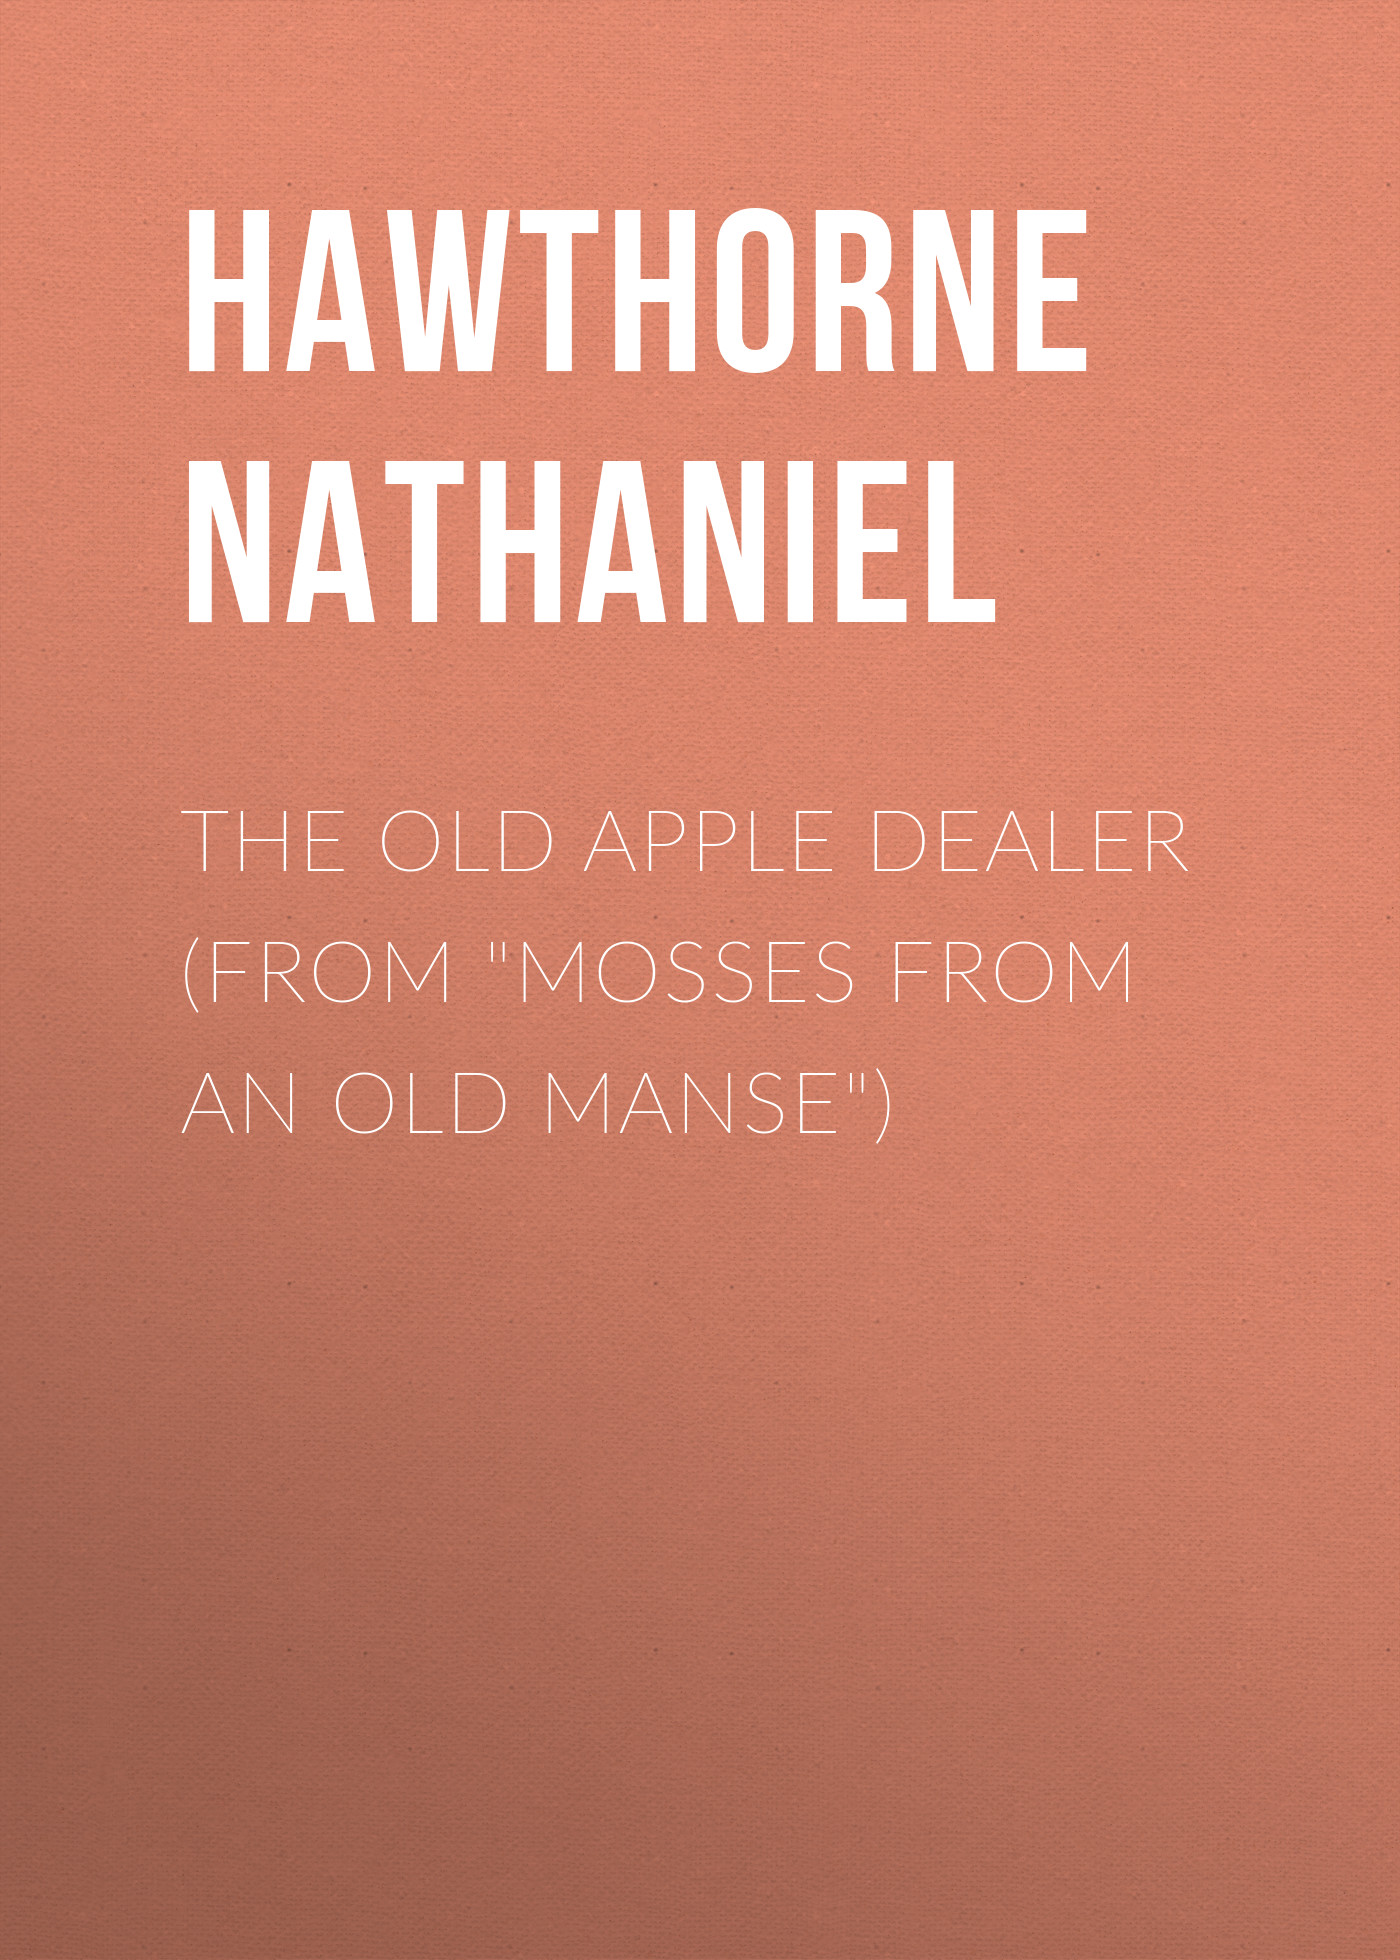 Hawthorne Nathaniel The Old Apple Dealer (From Mosses from an Old Manse) hawthorne n mosses from an old manse the blithedale romance